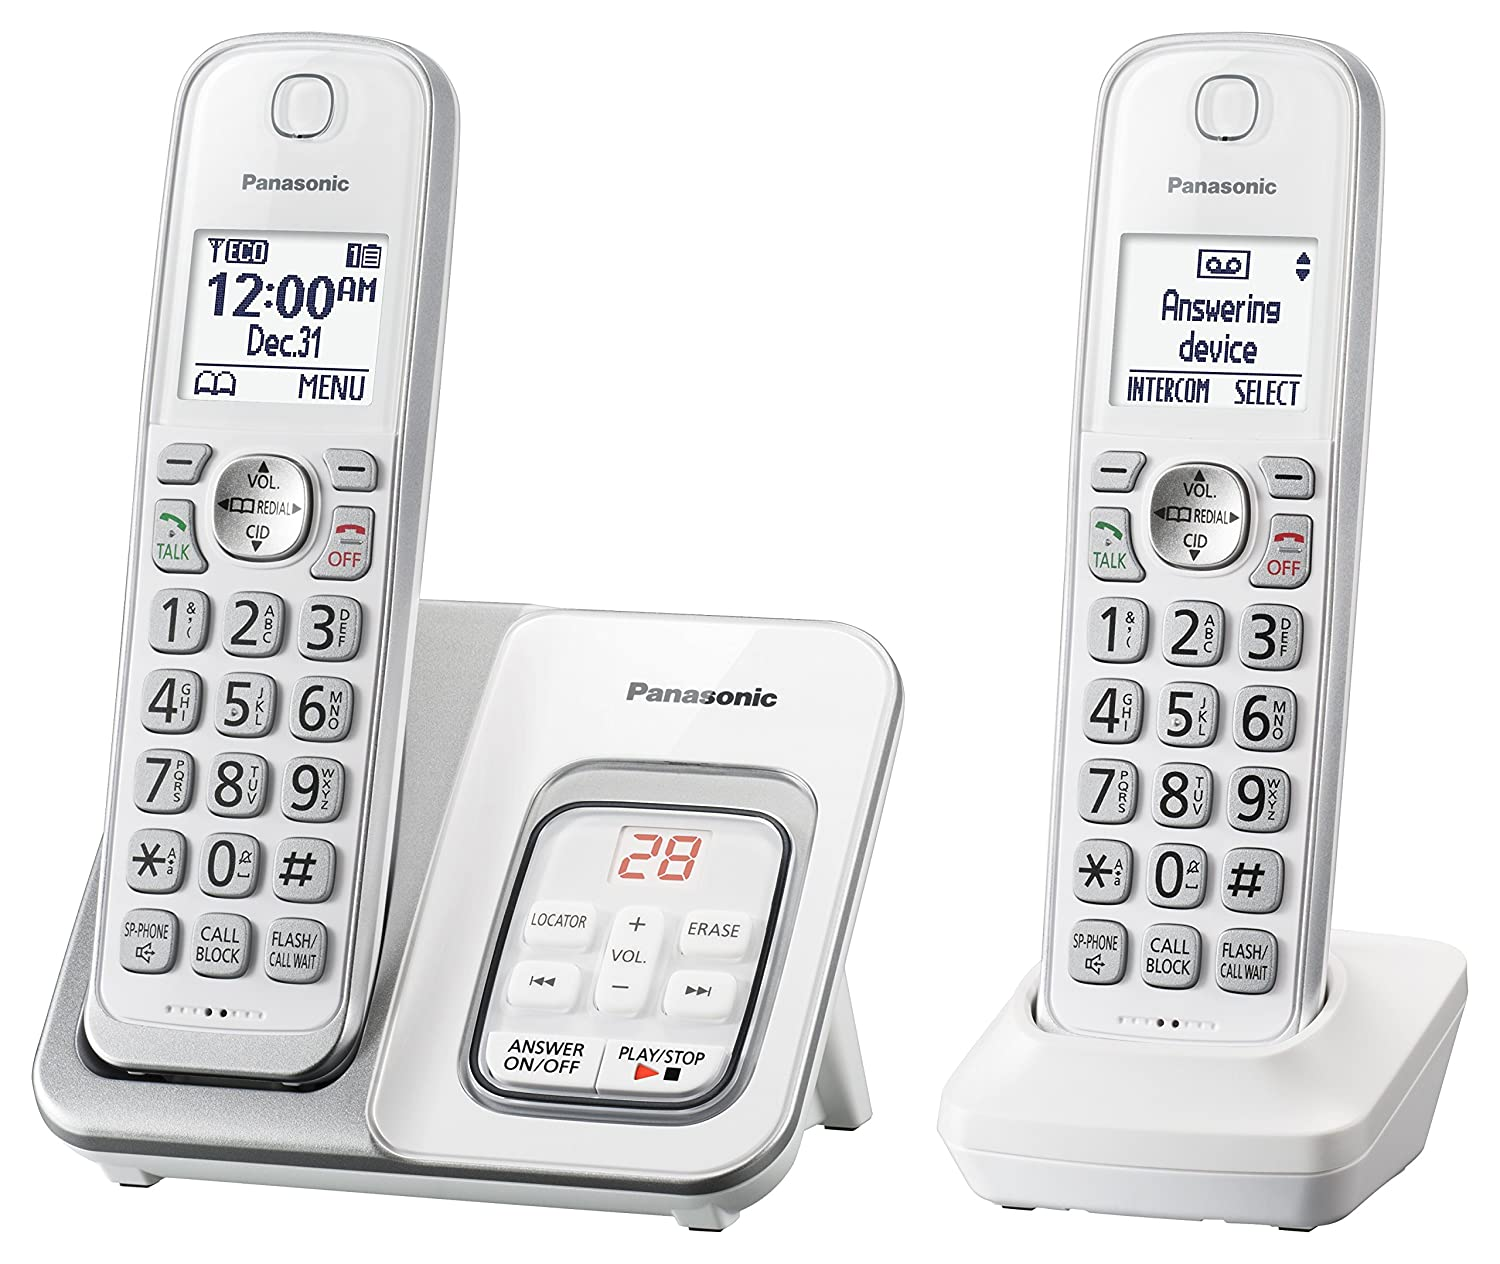 PANASONIC Expandable Cordless Phone System with Answering Machine and Call Block - 2 Cordless Handsets - KX-TGD532W (White)